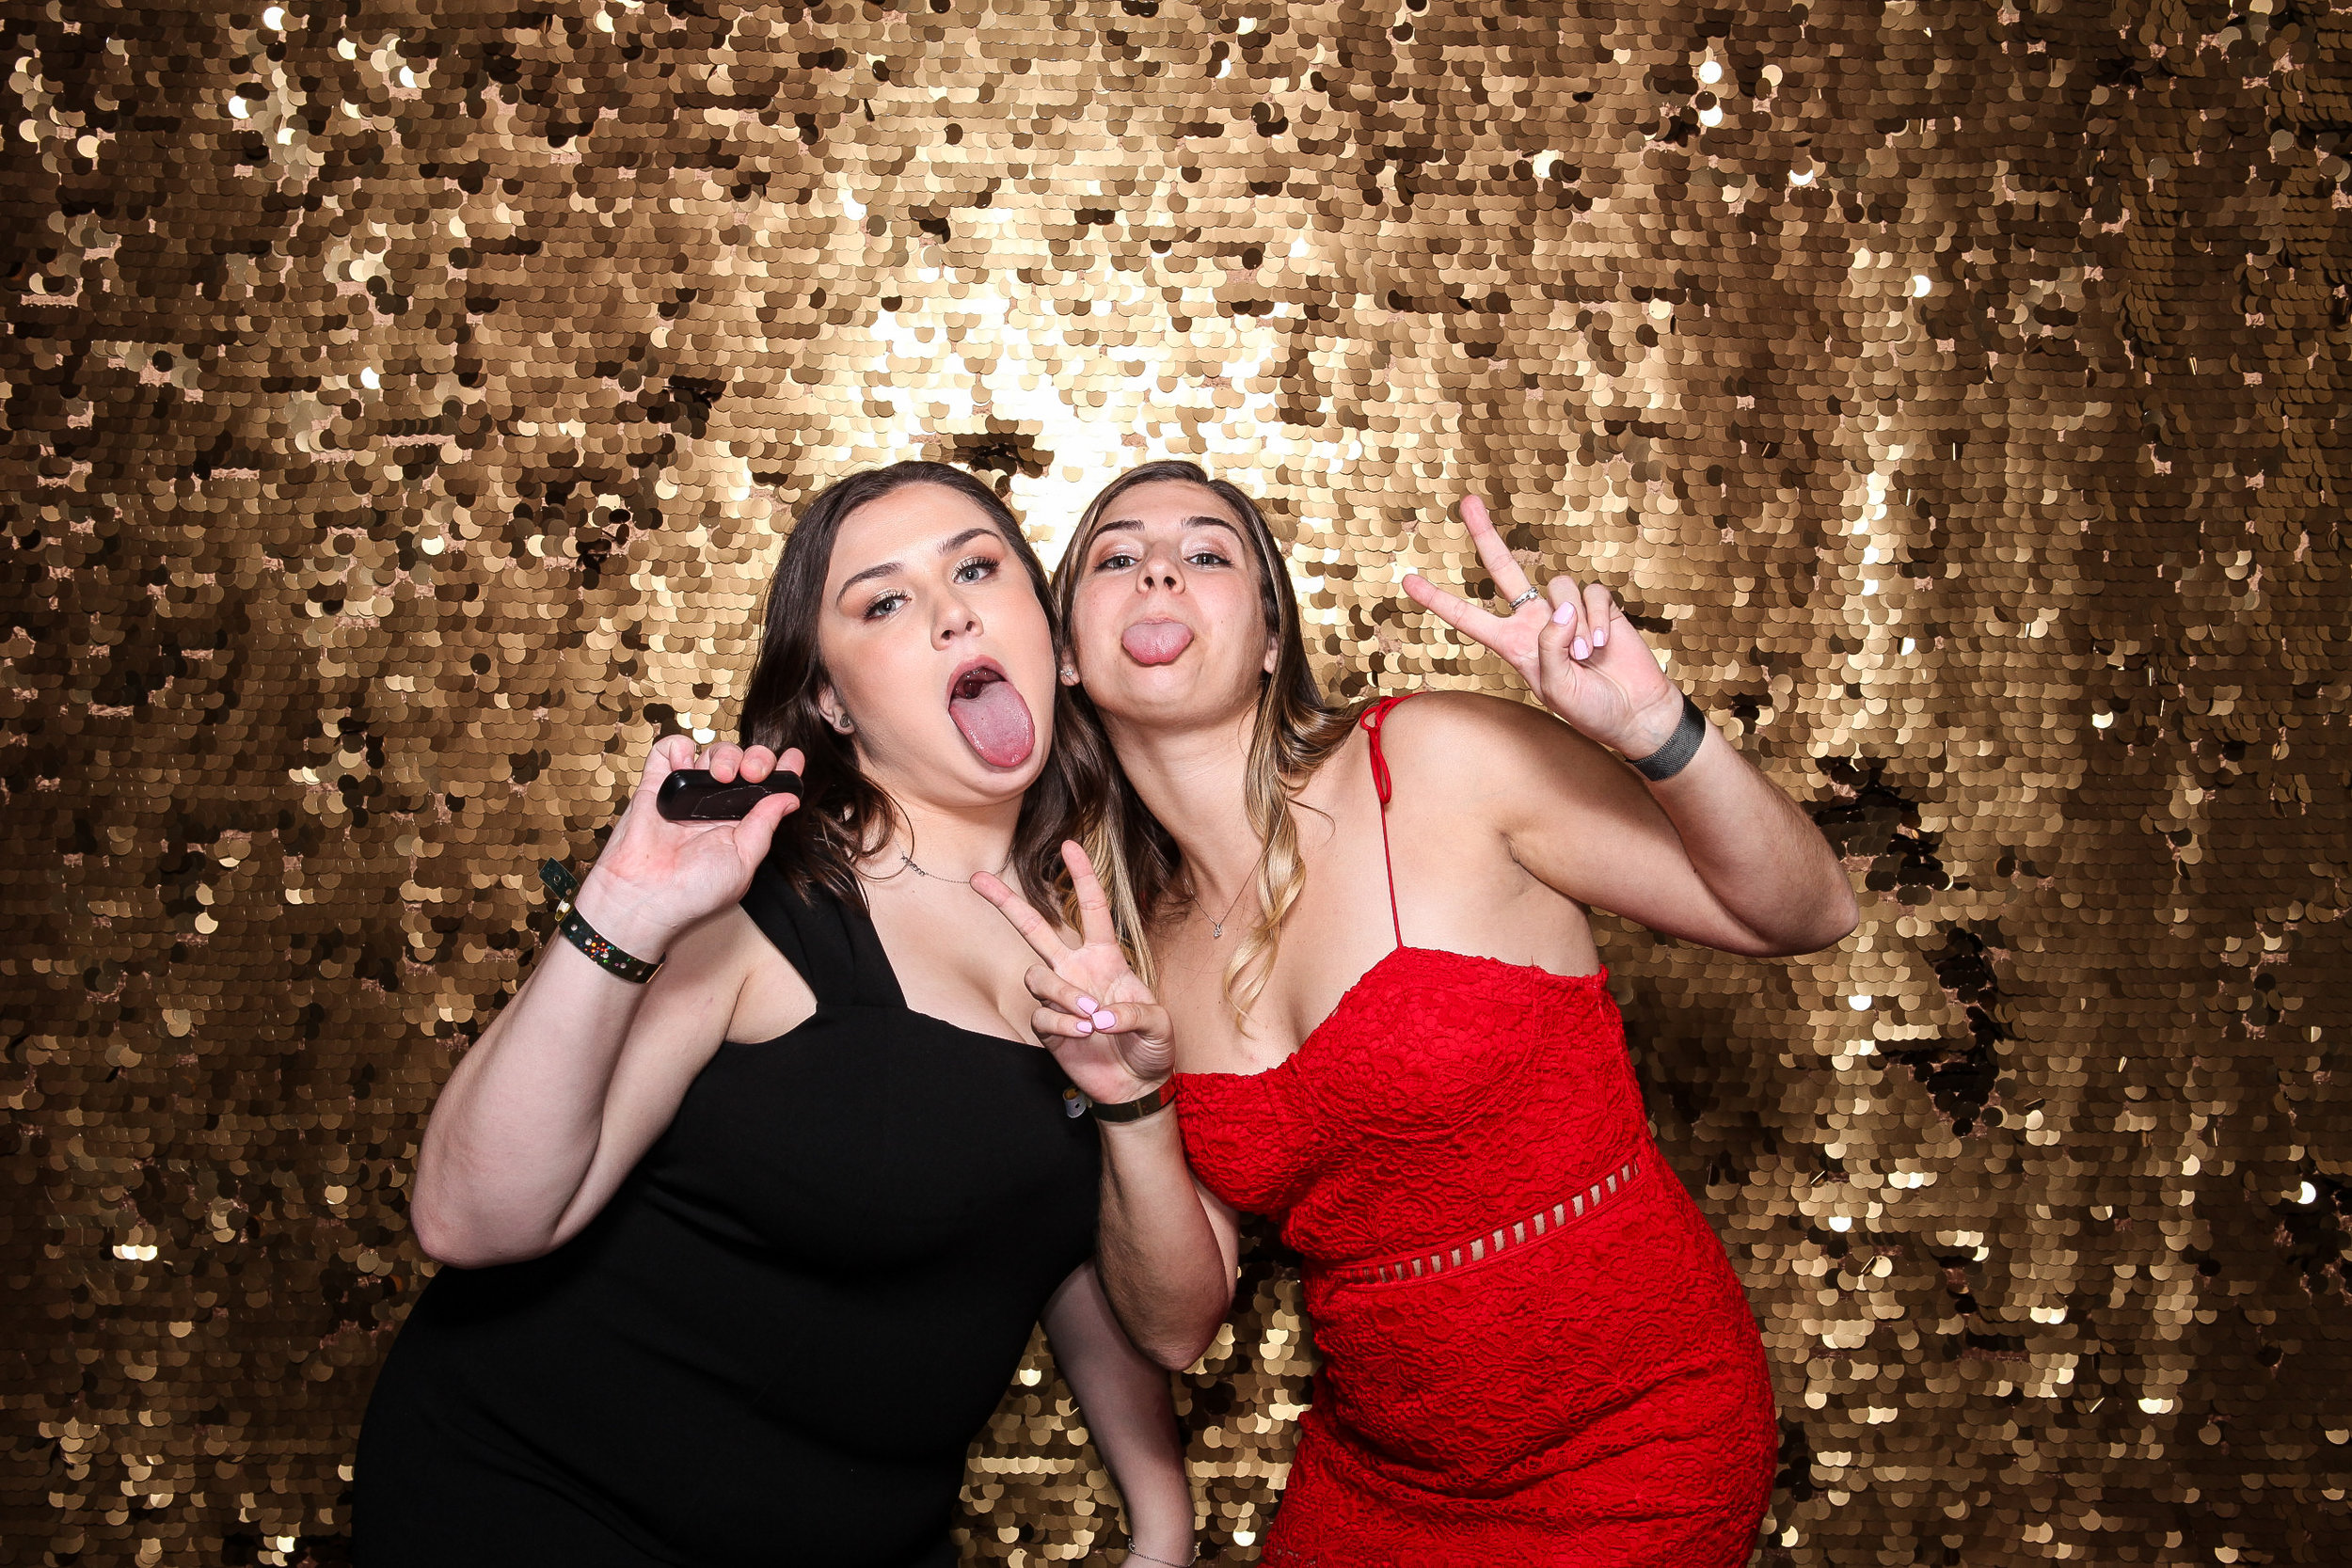 20190503_Adelphi_Senior_Formal-336.jpg